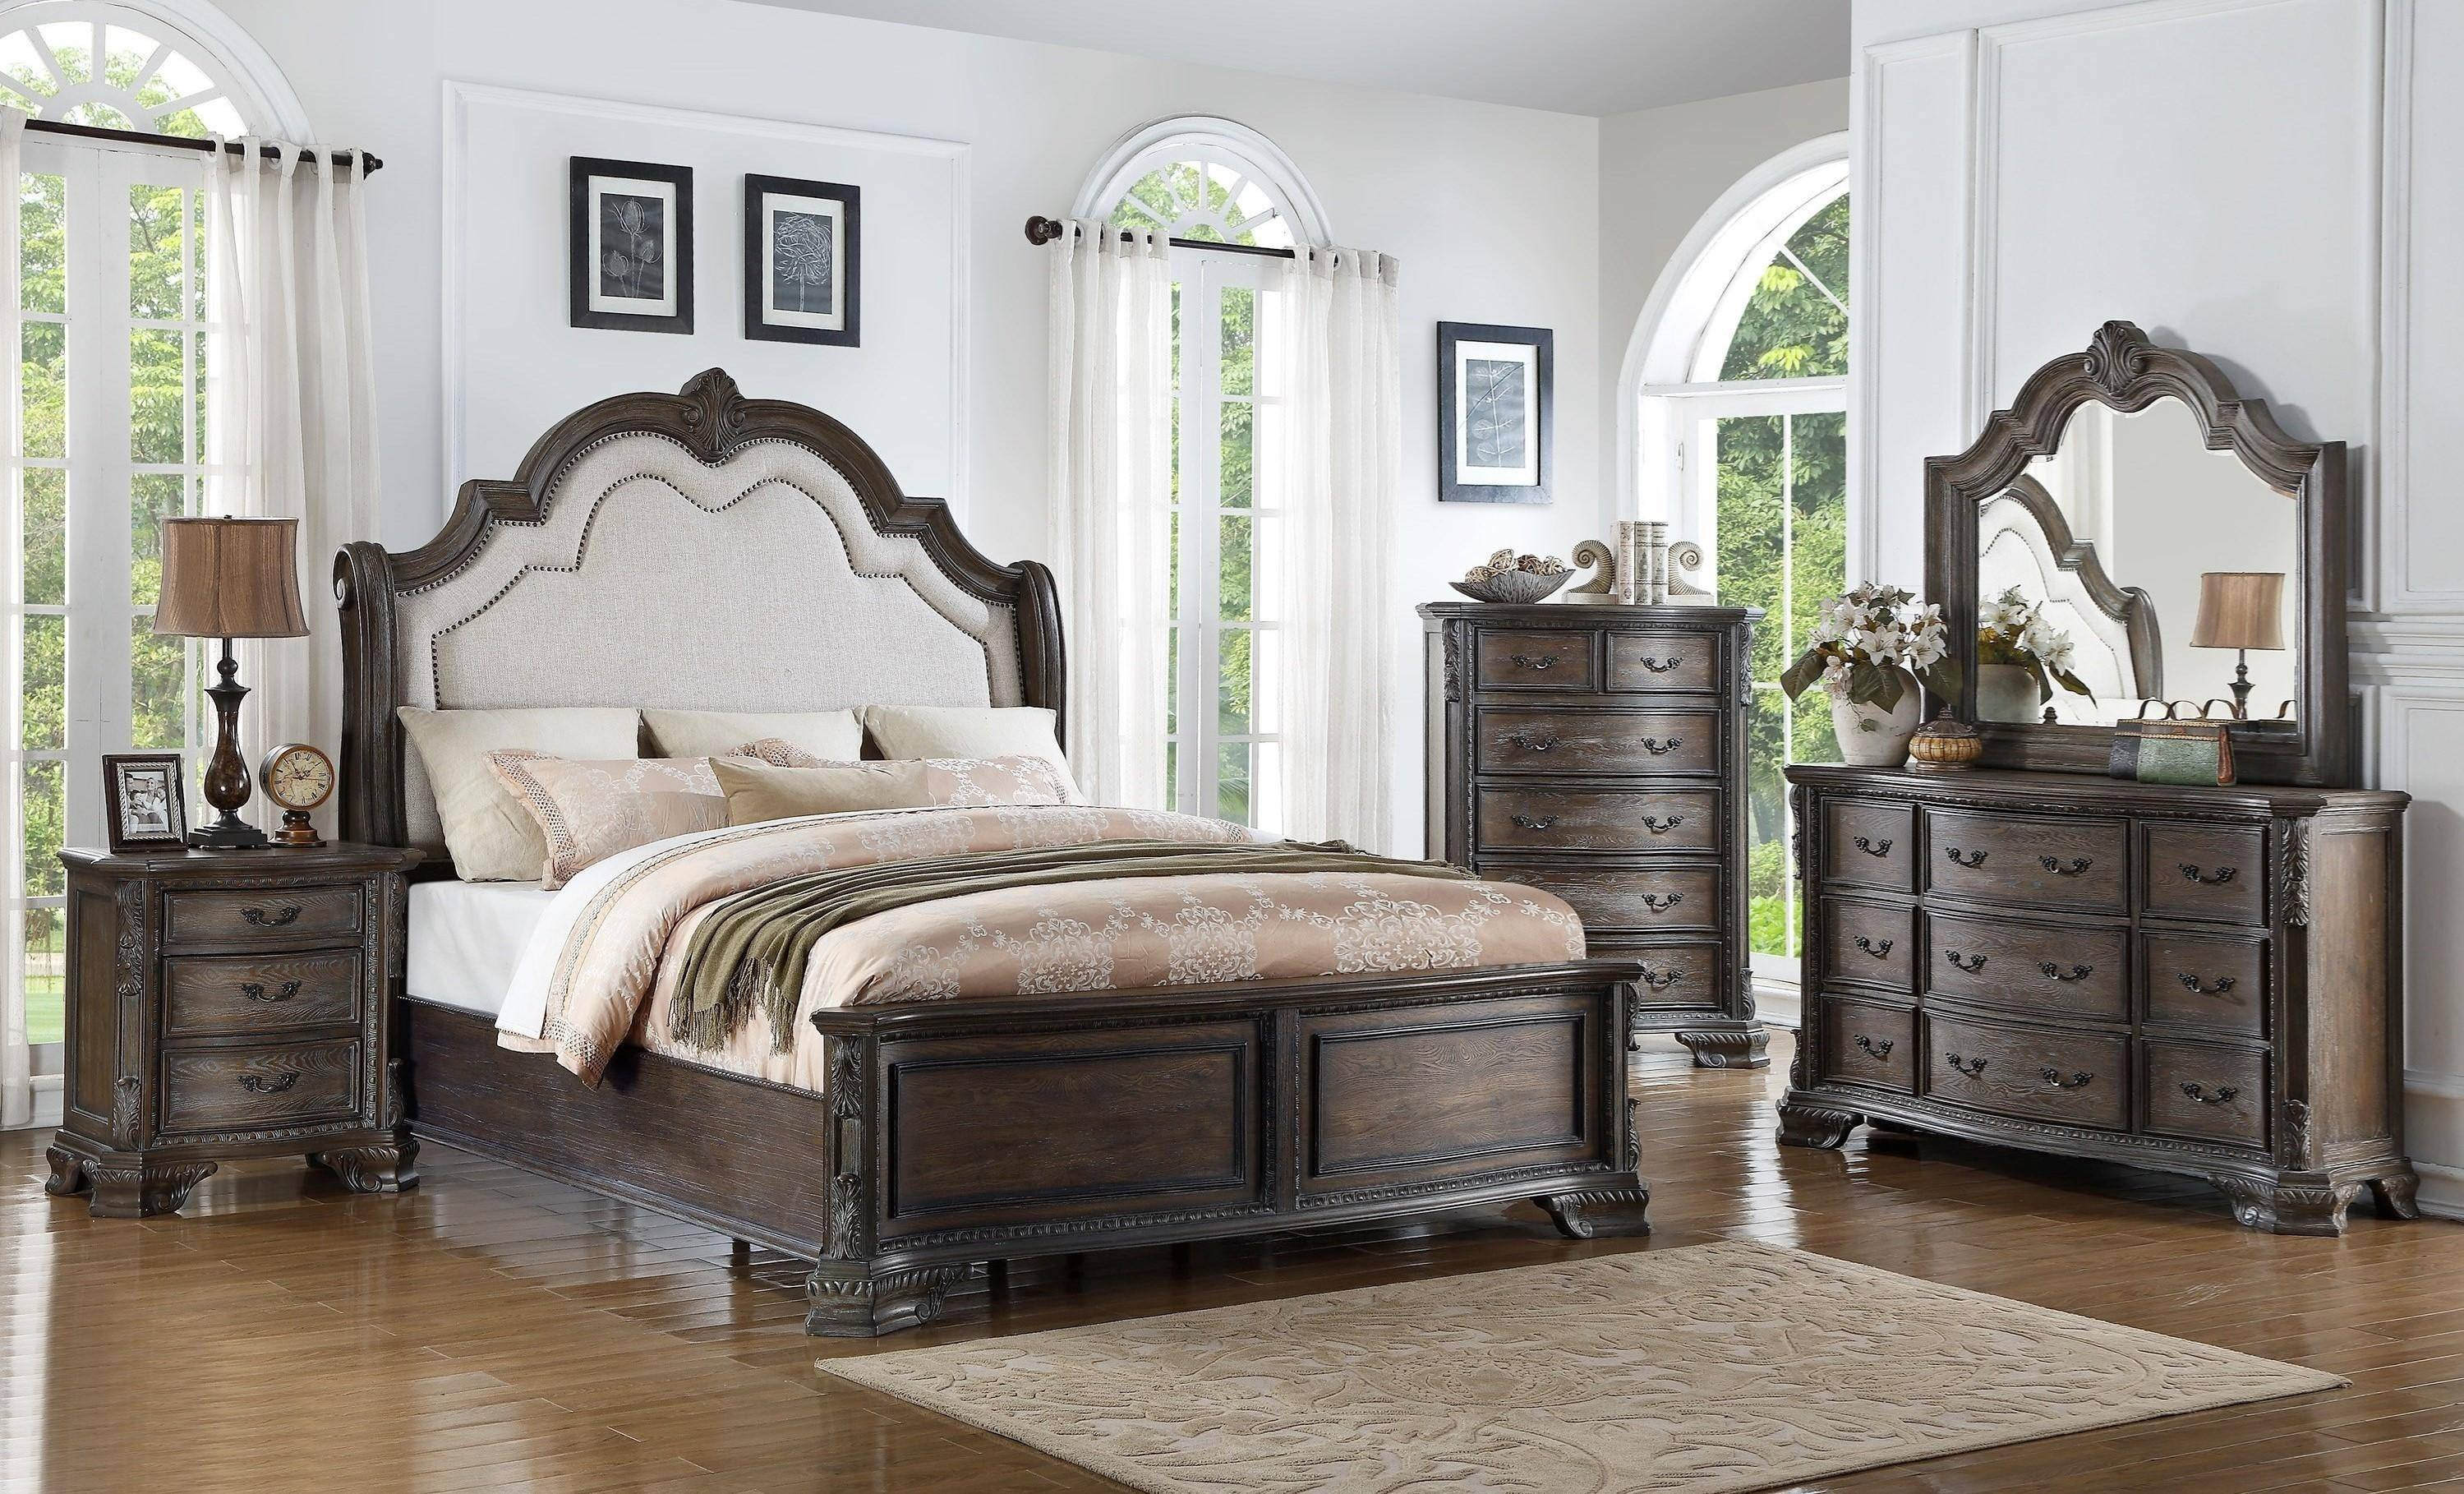 Tufted Queen Bedroom Set Luxury Crown Mark B1120 Sheffield Queen Panel Bed In Gray Fabric